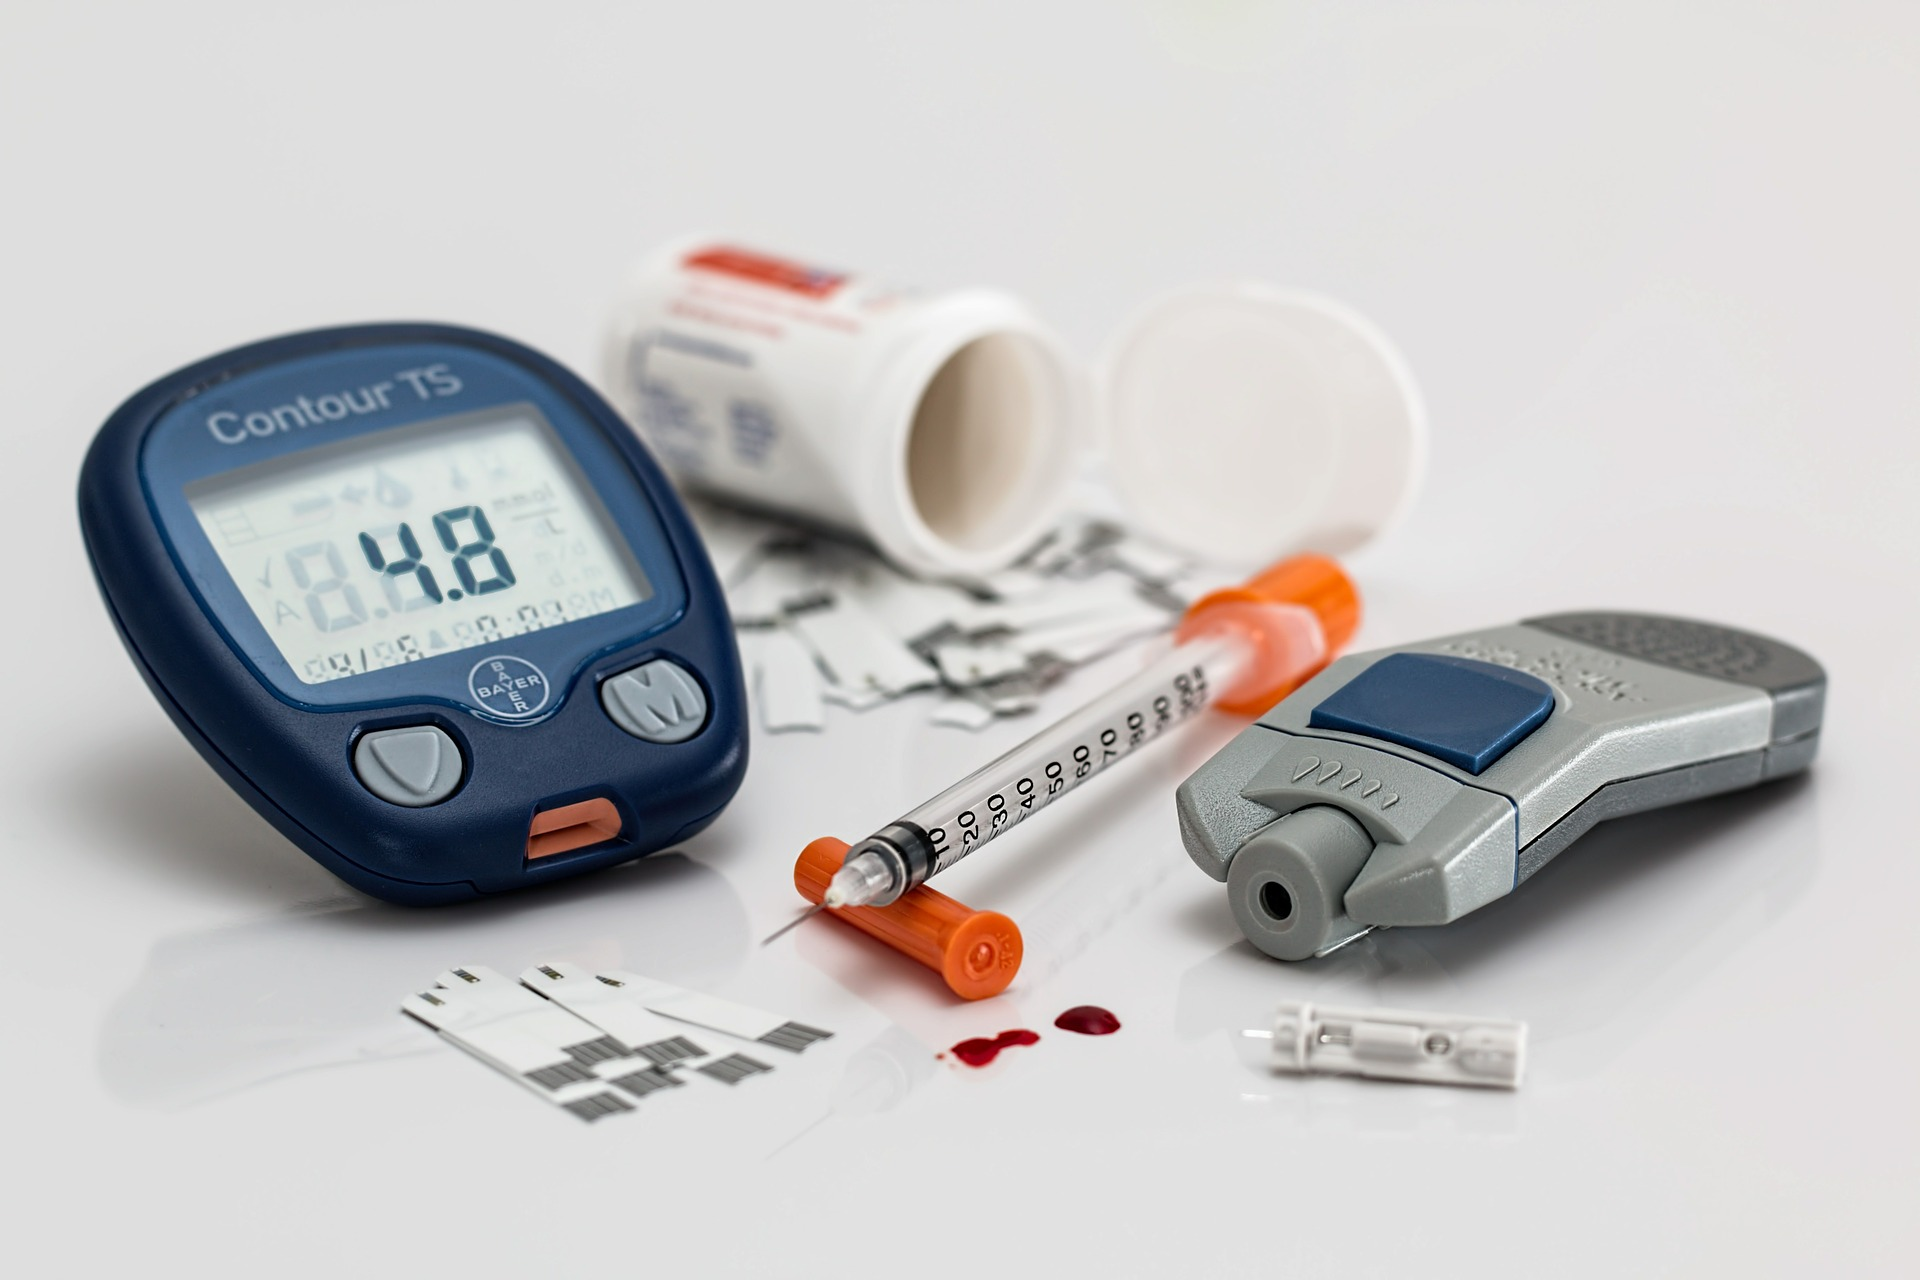 glucometer and diabetes testing equipment